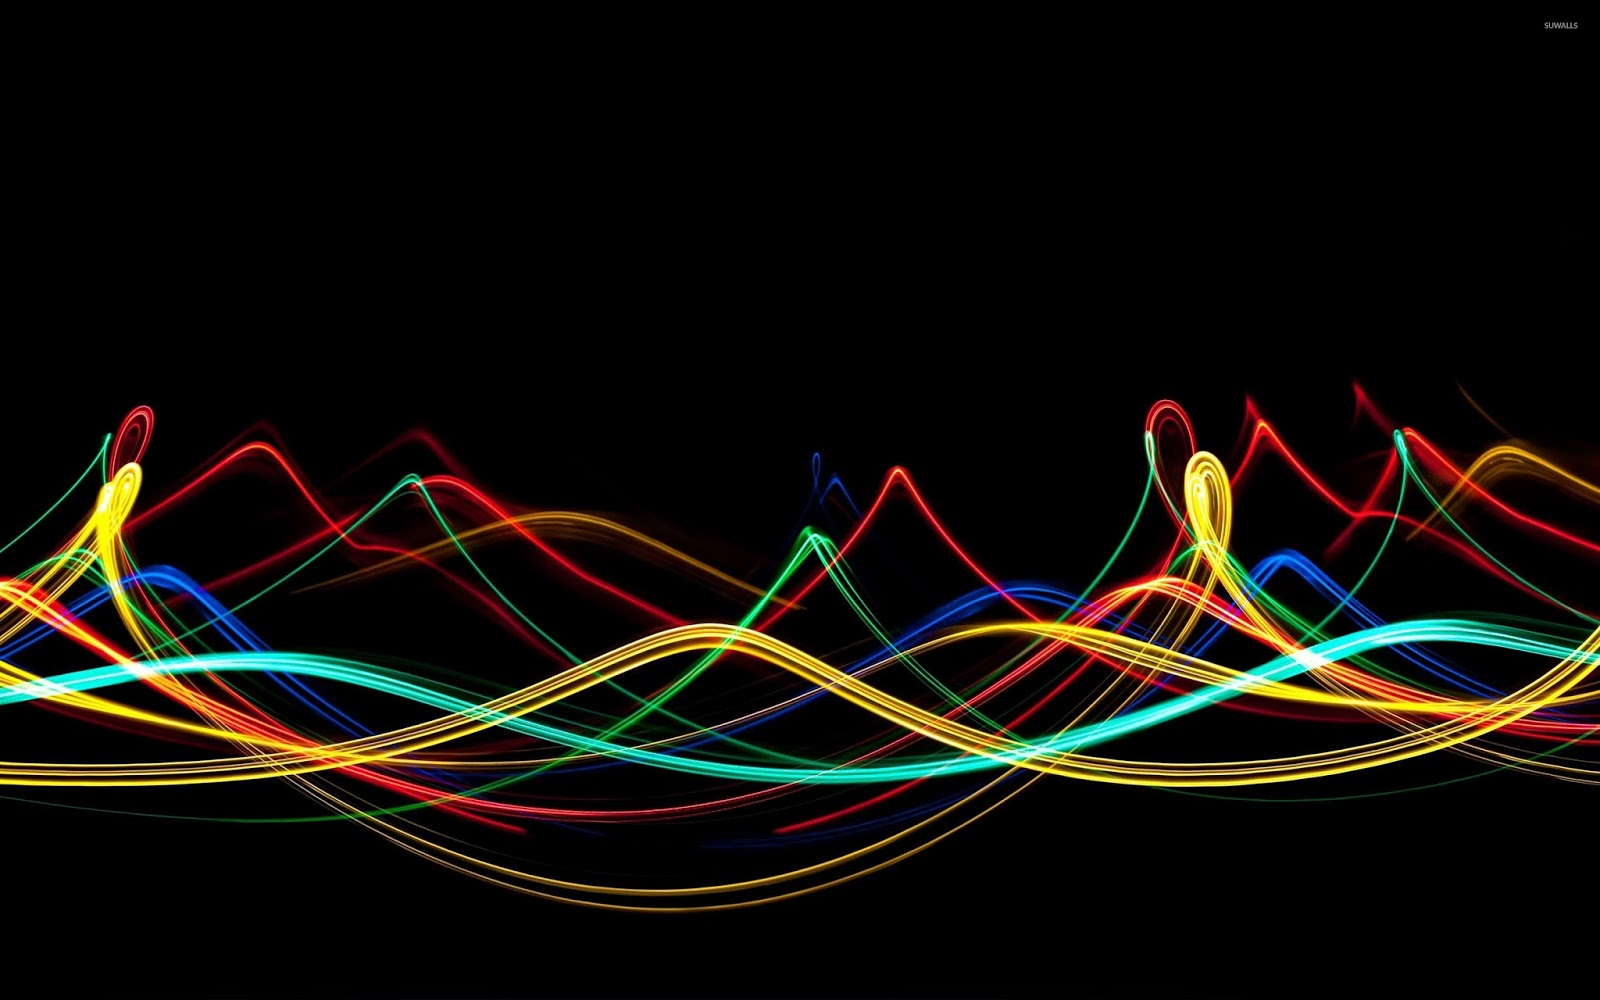 Neon Wallpapers for Android - Neon Strands Wallpaper